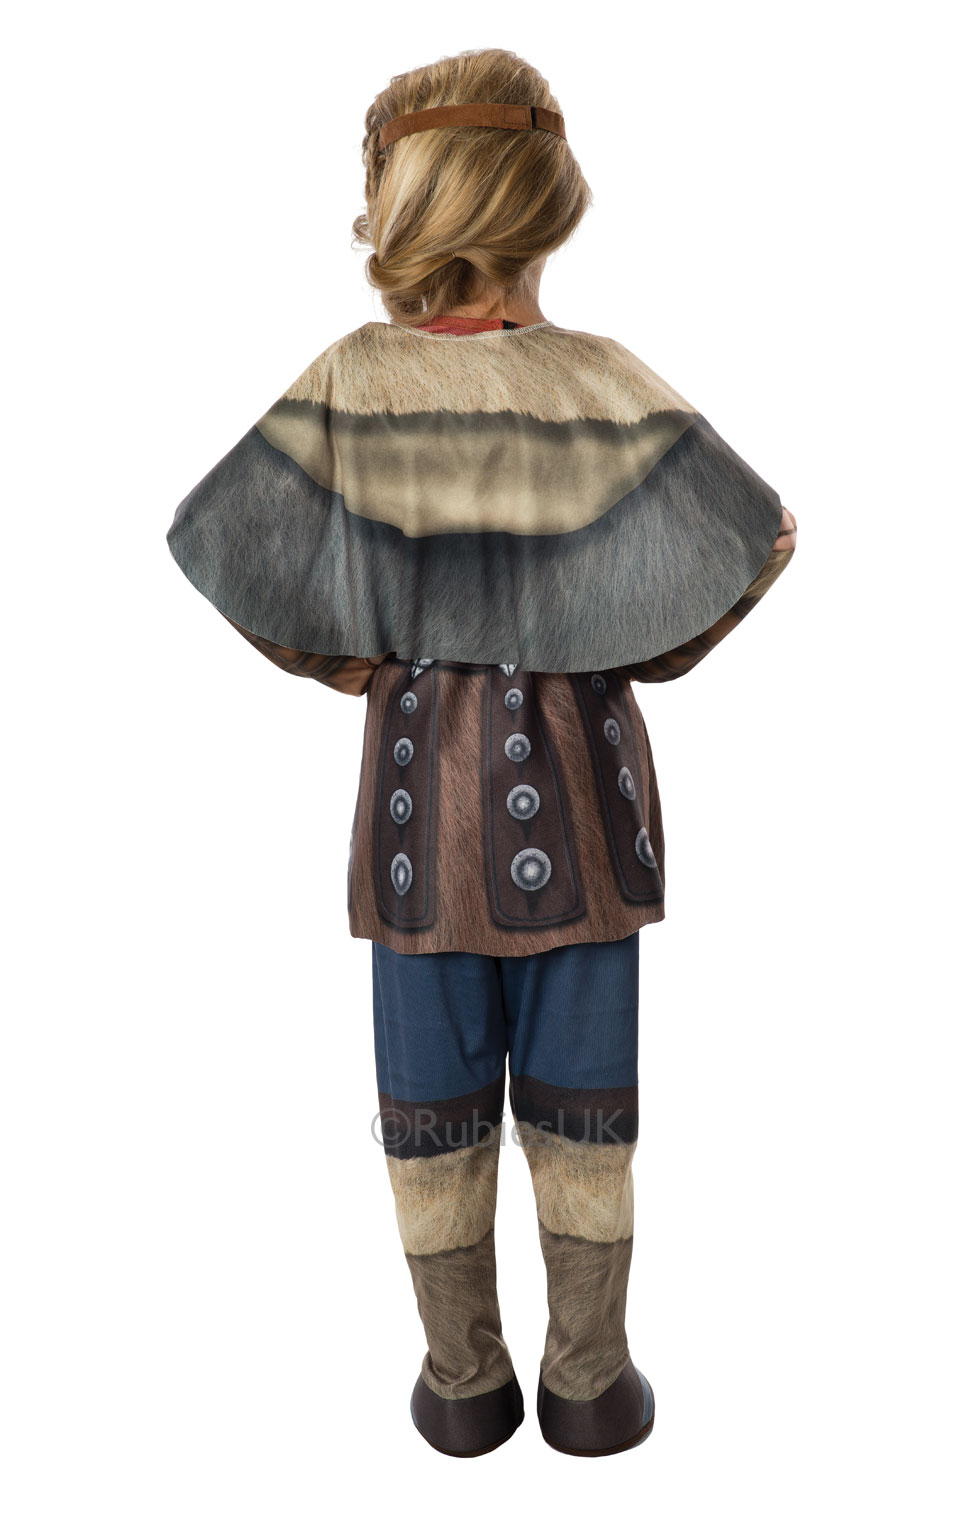 How To Train Your Dragon 2 Viking Astrid Girls Fancy Dress Costume ... | 960 x 1536 jpeg 127kB